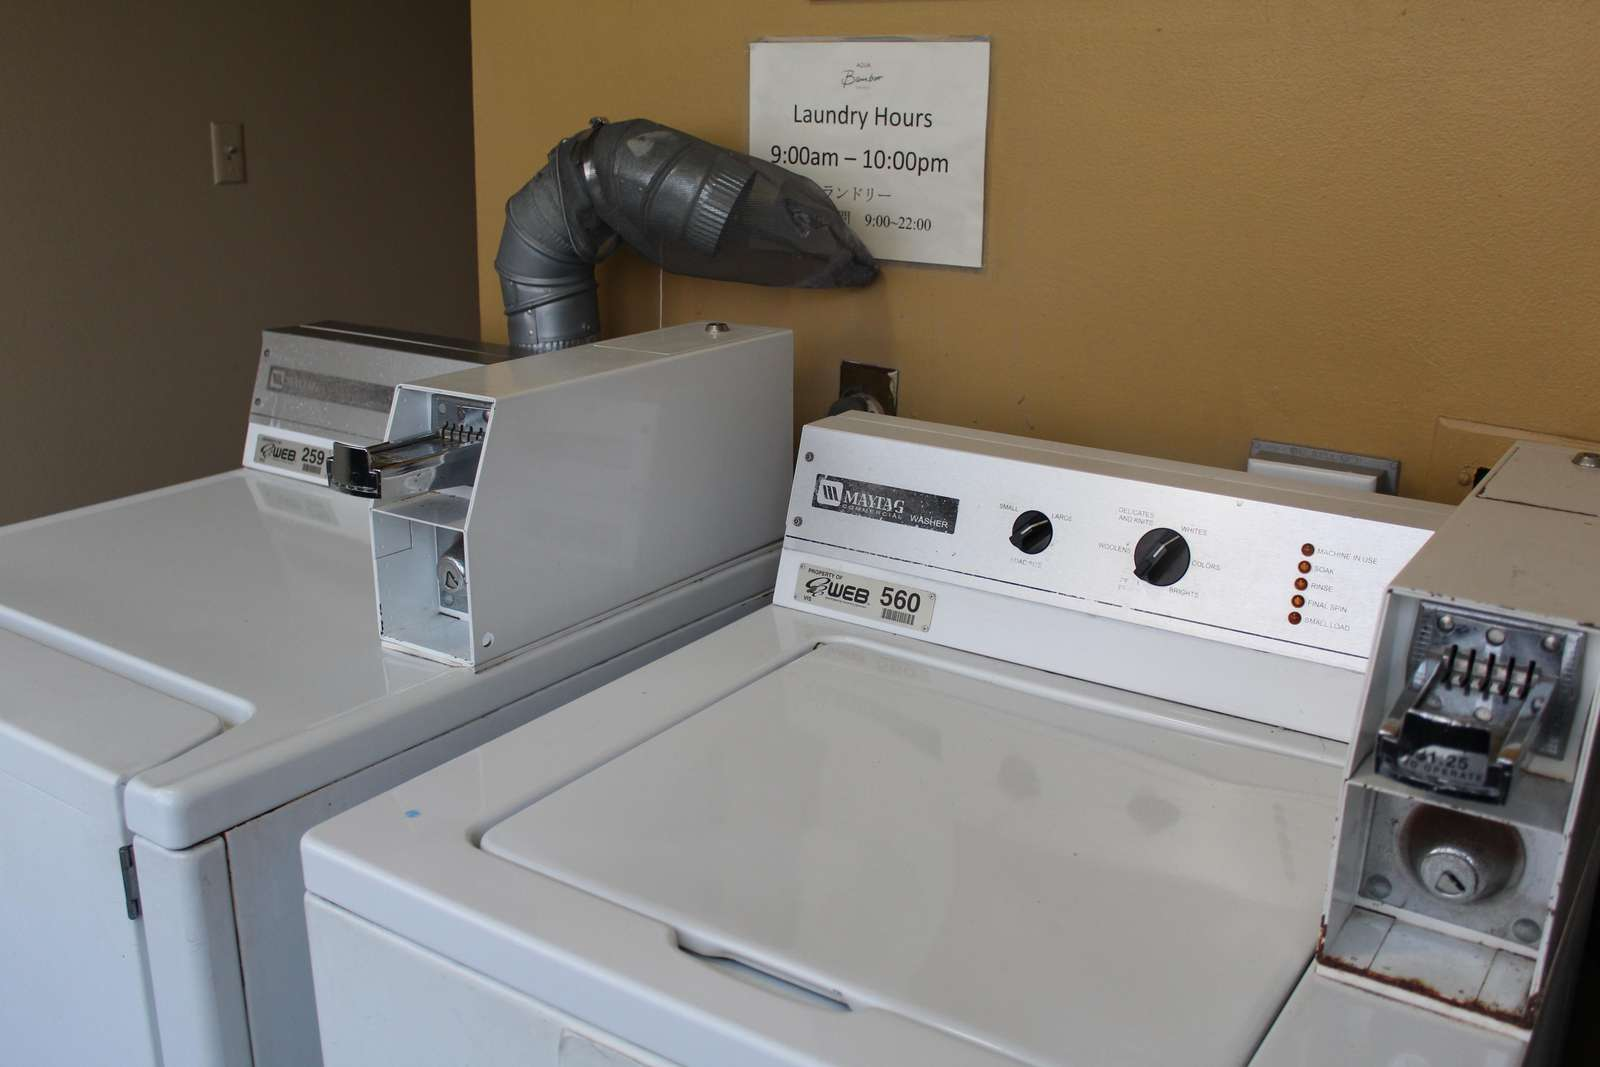 Laundry facilities on several floors